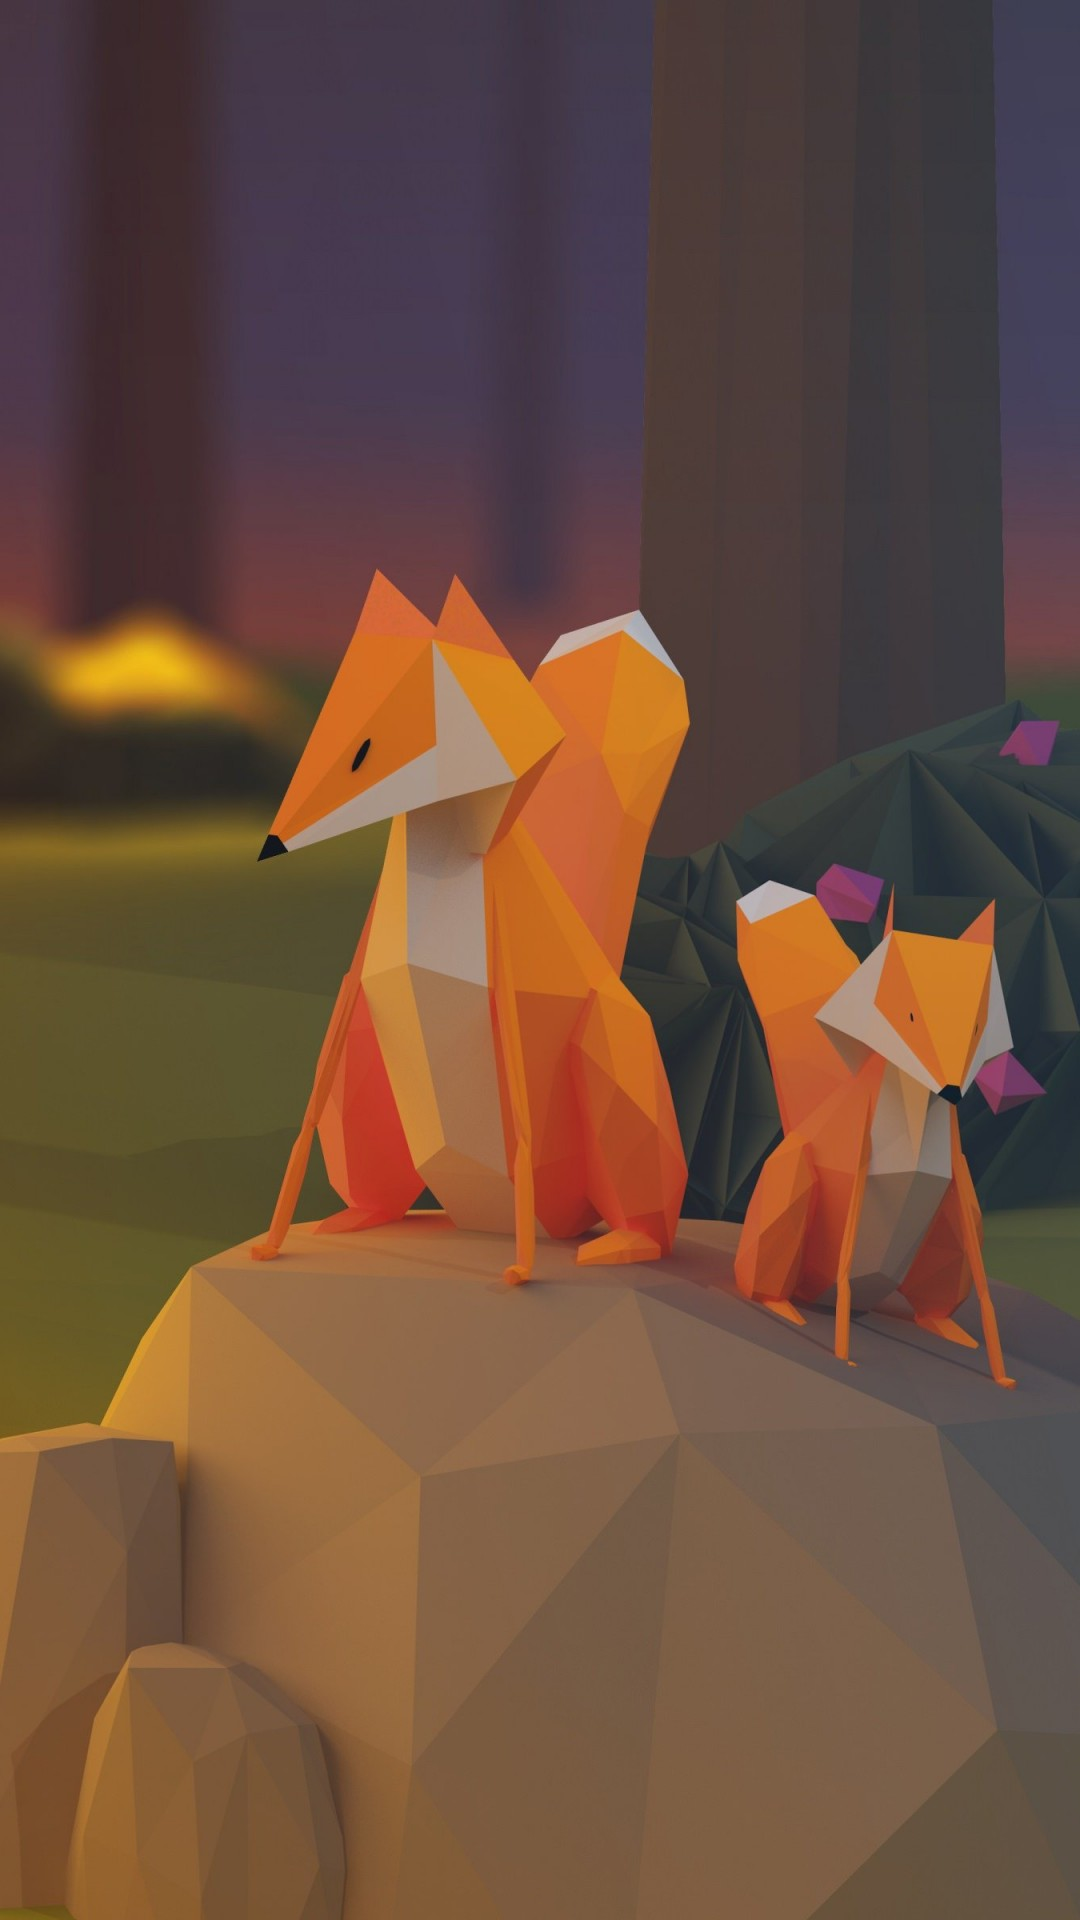 Low Poly Foxes Wallpaper for Google Nexus 5